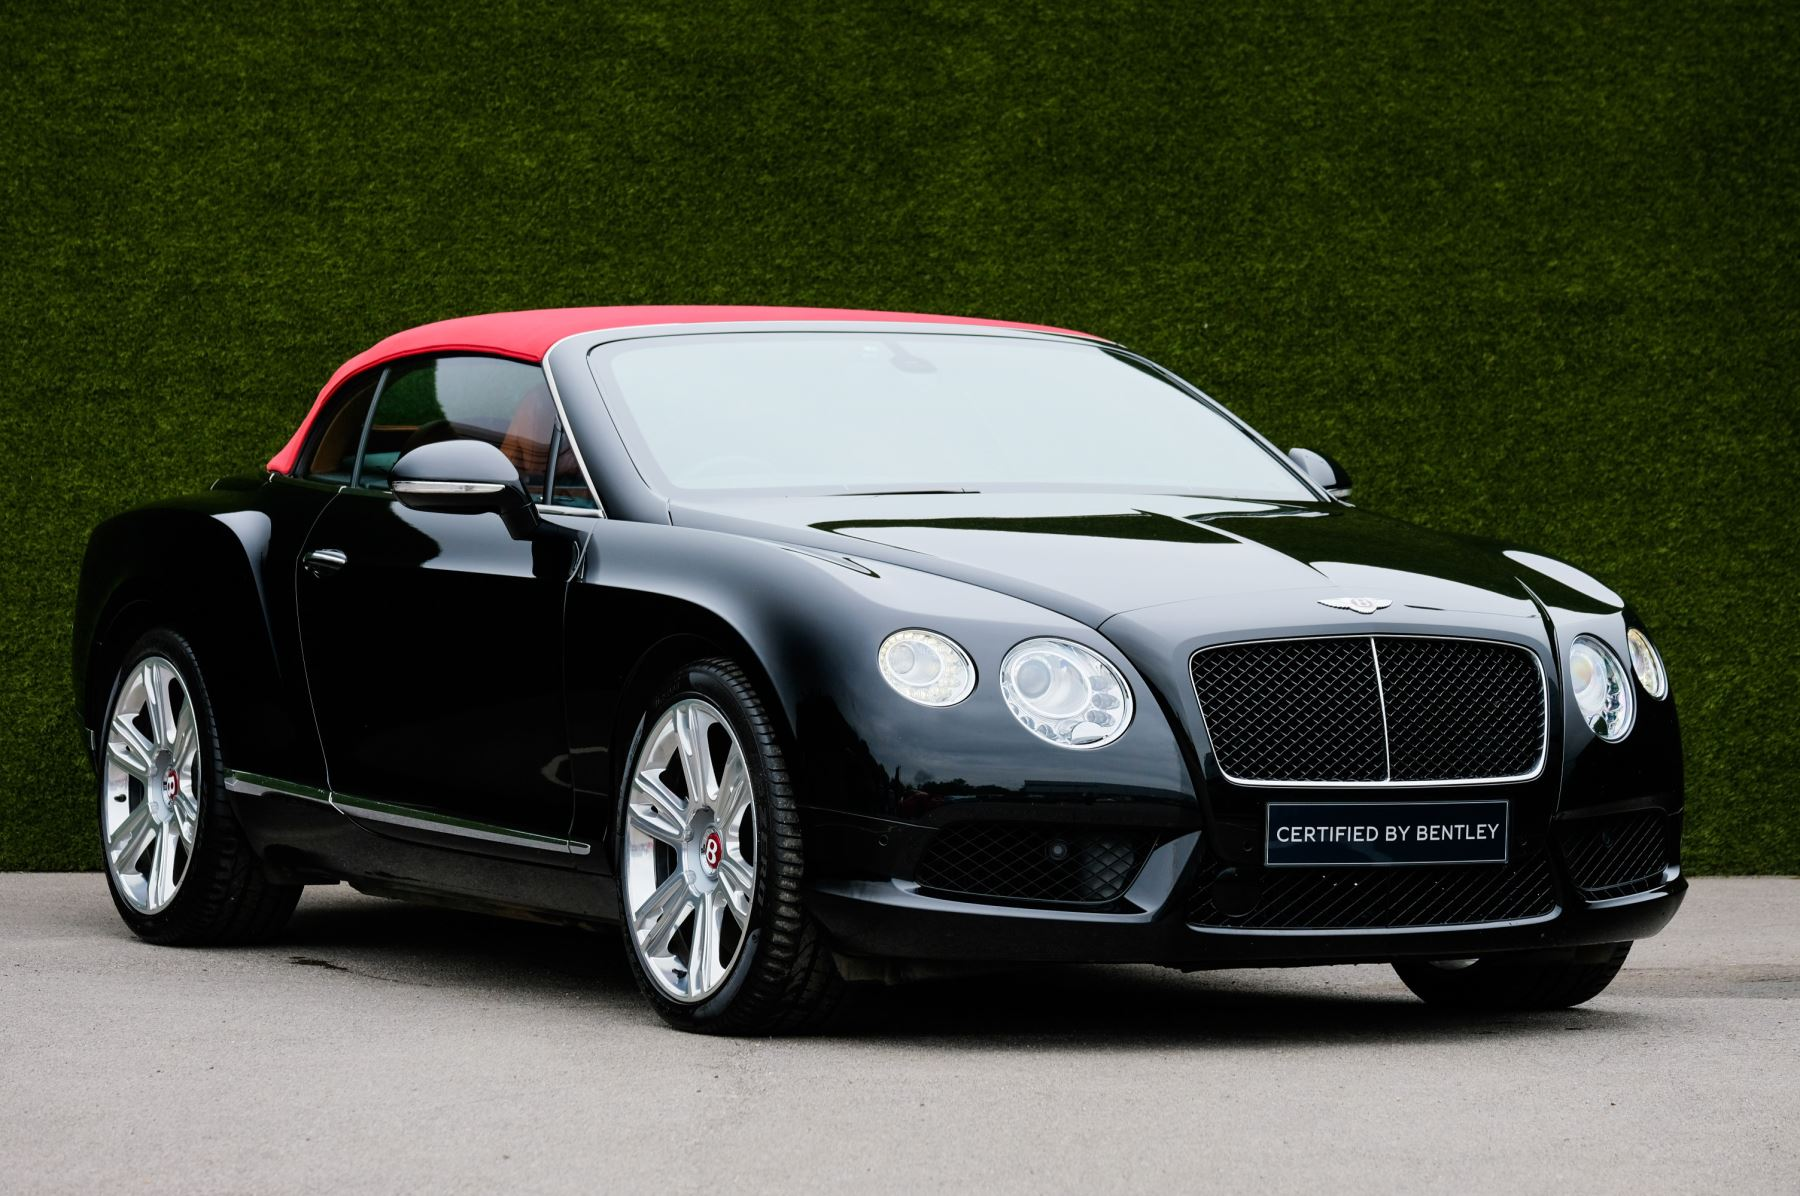 Bentley Continental GTC 4.0 V8 - Mulliner Driving Specification including Colour Specification Automatic 2 door Convertible (2014)